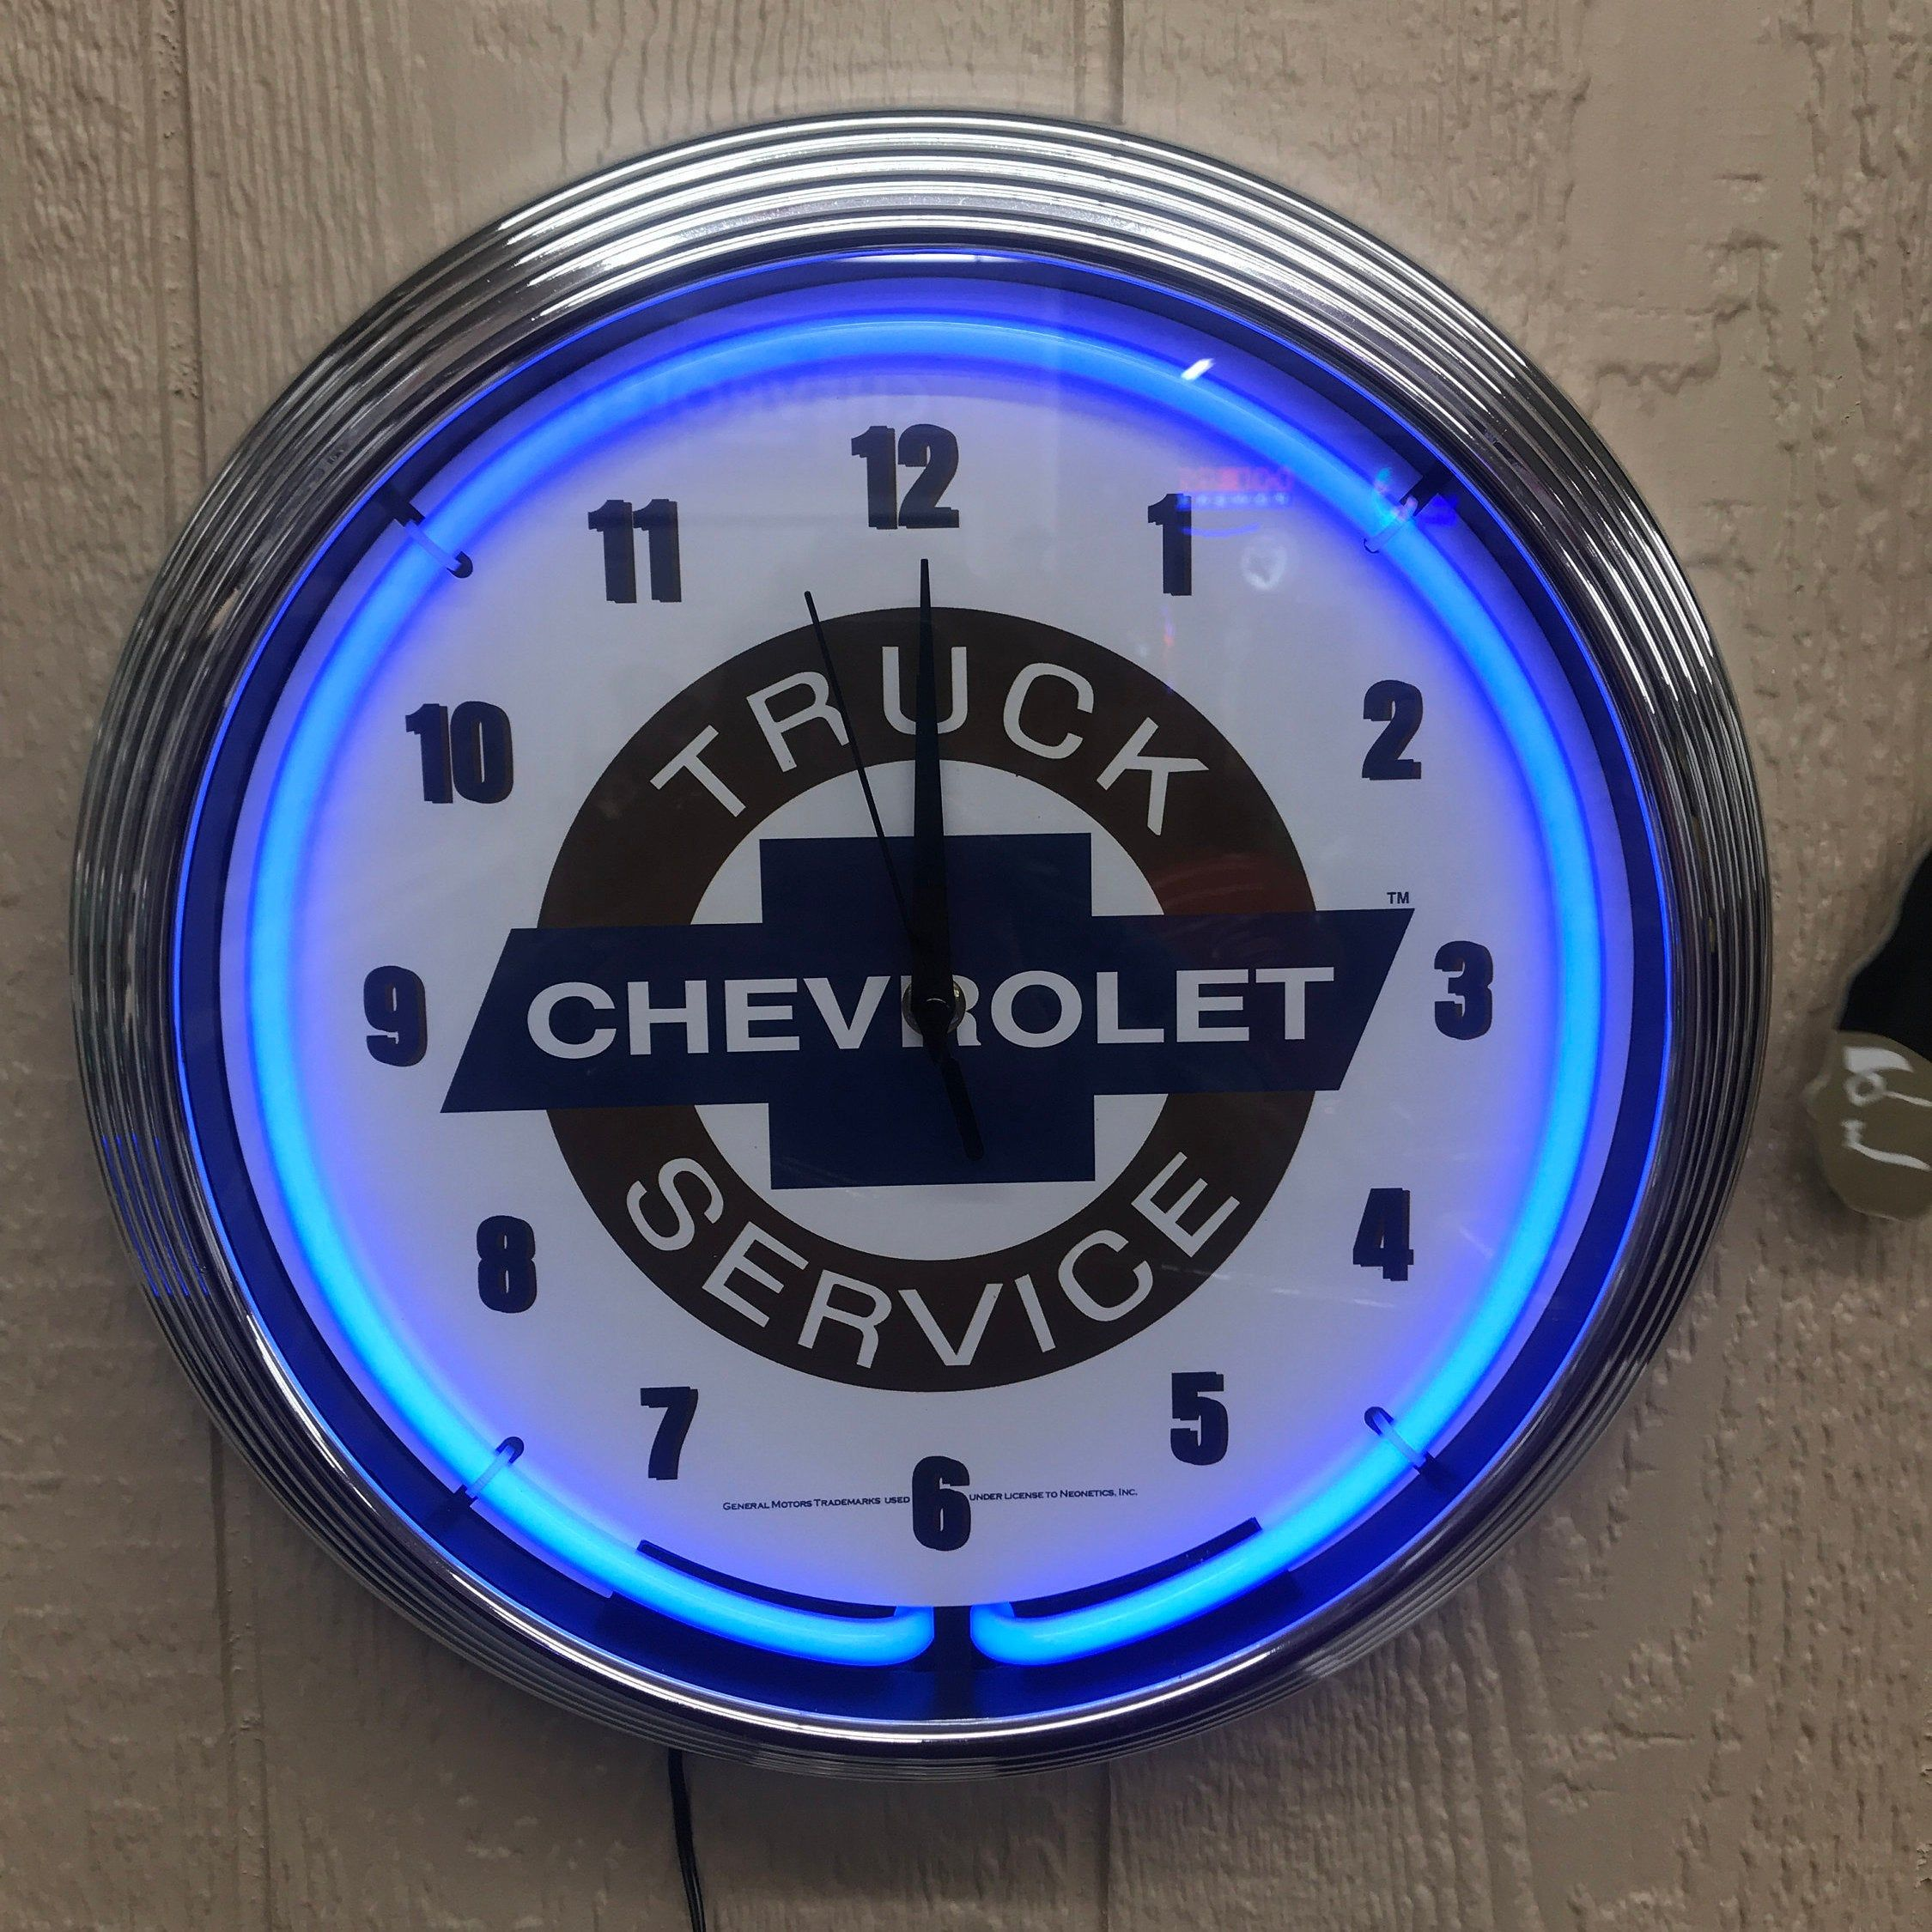 Chevrolet Truck Service Neon Clock 15 New Chevy Trucks Chevy Signs Gifts For Dad Gifts For Him Chri Chevy Trucks New Chevy Truck Custom Chevy Trucks